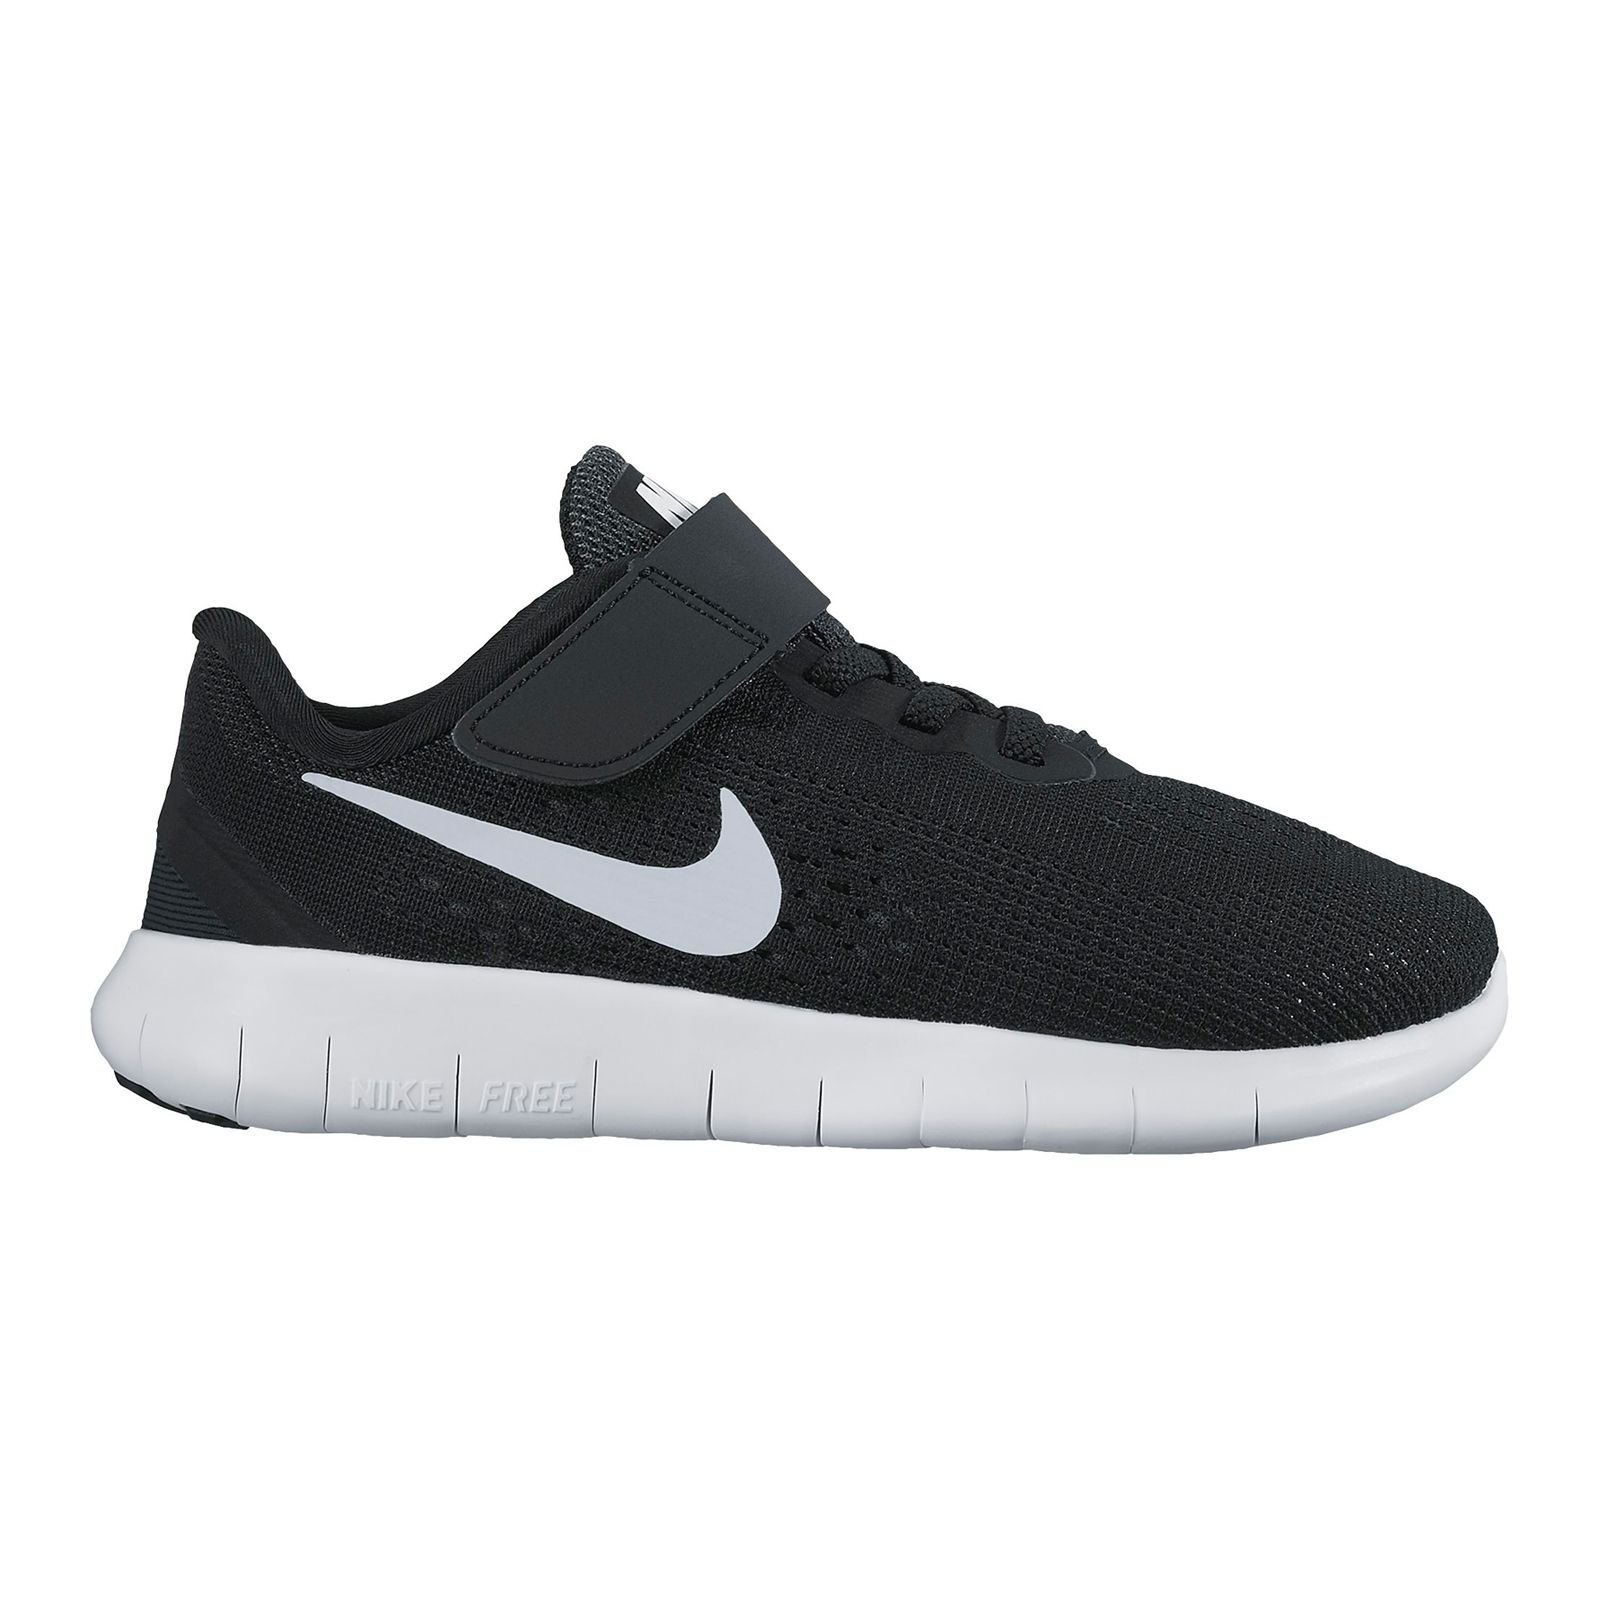 nike free run ps chaussures de sport noir brandalley. Black Bedroom Furniture Sets. Home Design Ideas